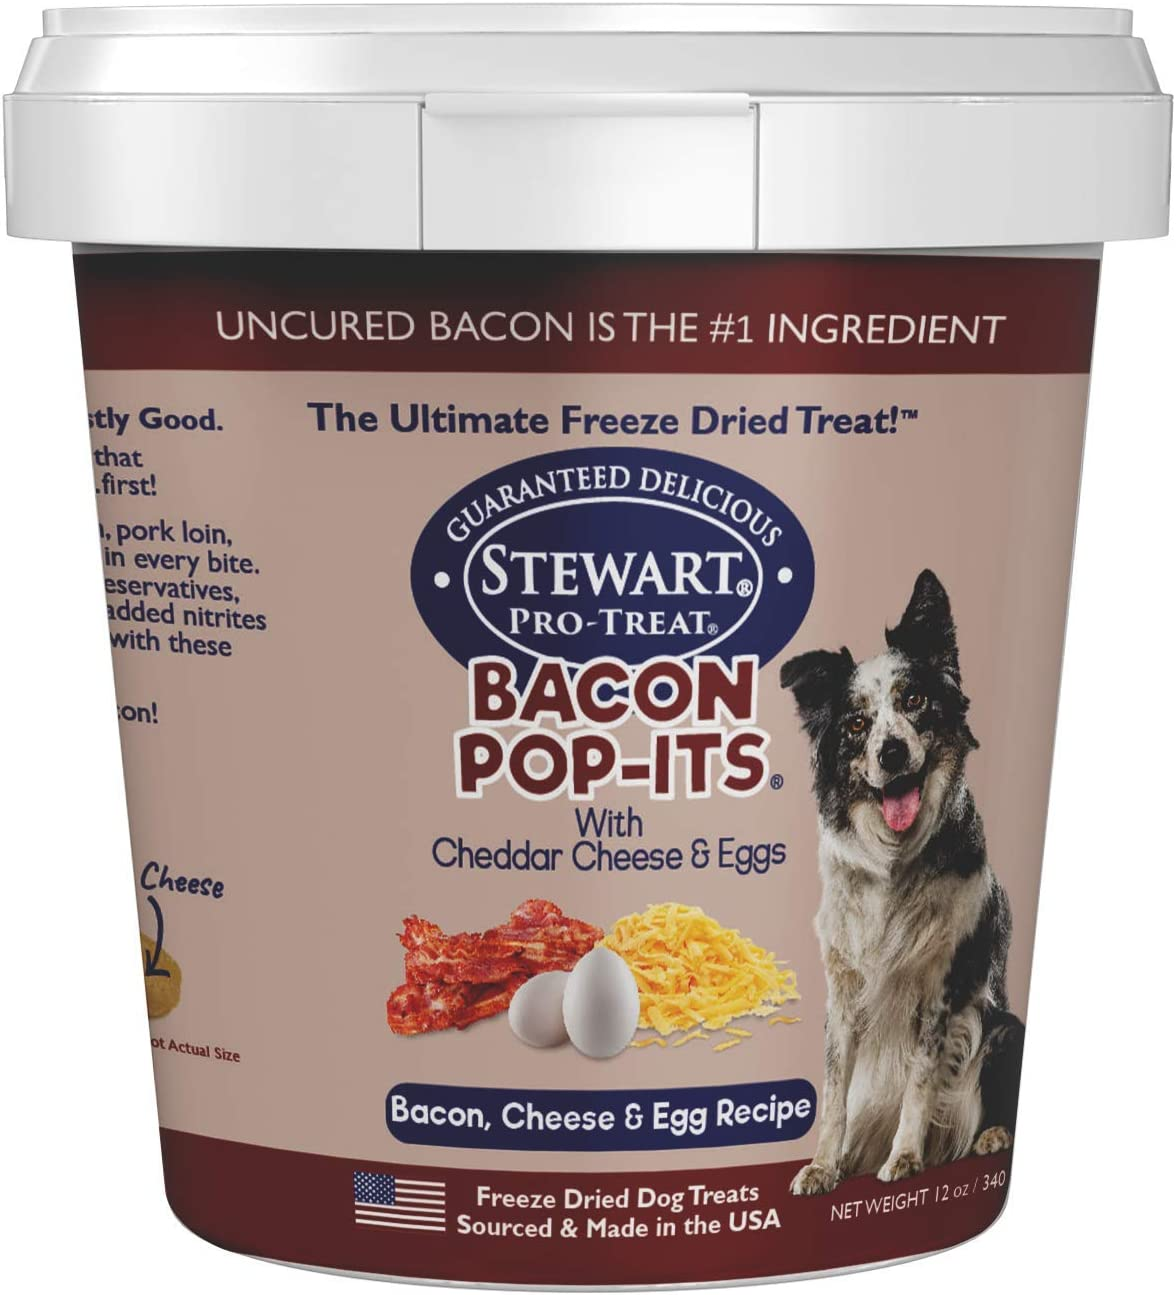 Stewart Bacon Pop-Its Dog Treats Made in the USA (Limited Ingredient Freeze Dried Dog Treats, Bacon Dog Treats, 3 Flavor Varieties) Resealable Bag or Tub to Preserve Freshness